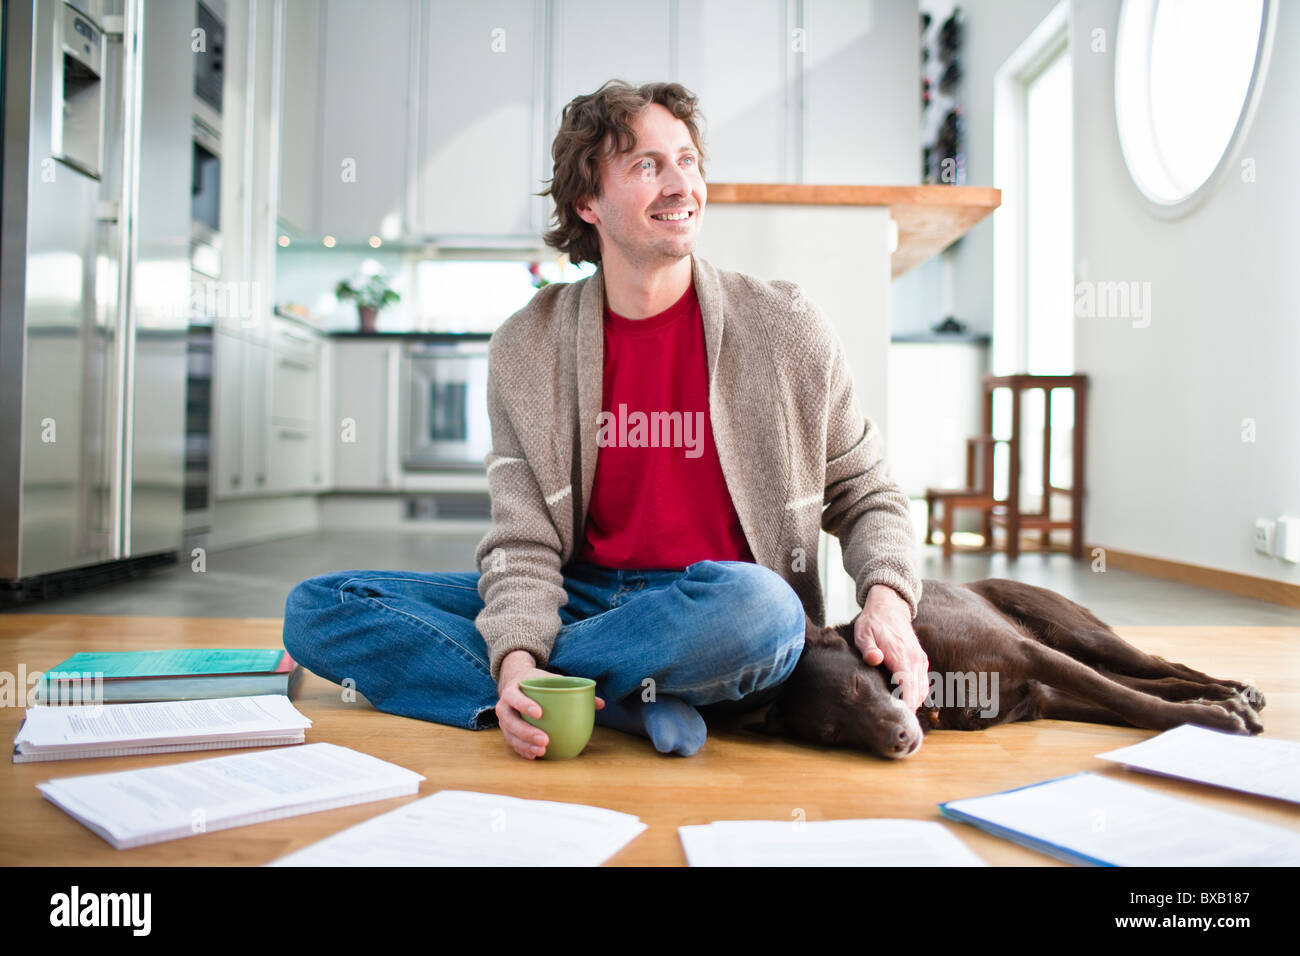 Mid-adult man doing paperwork on floor, while dog is sleeping next to him - Stock Image